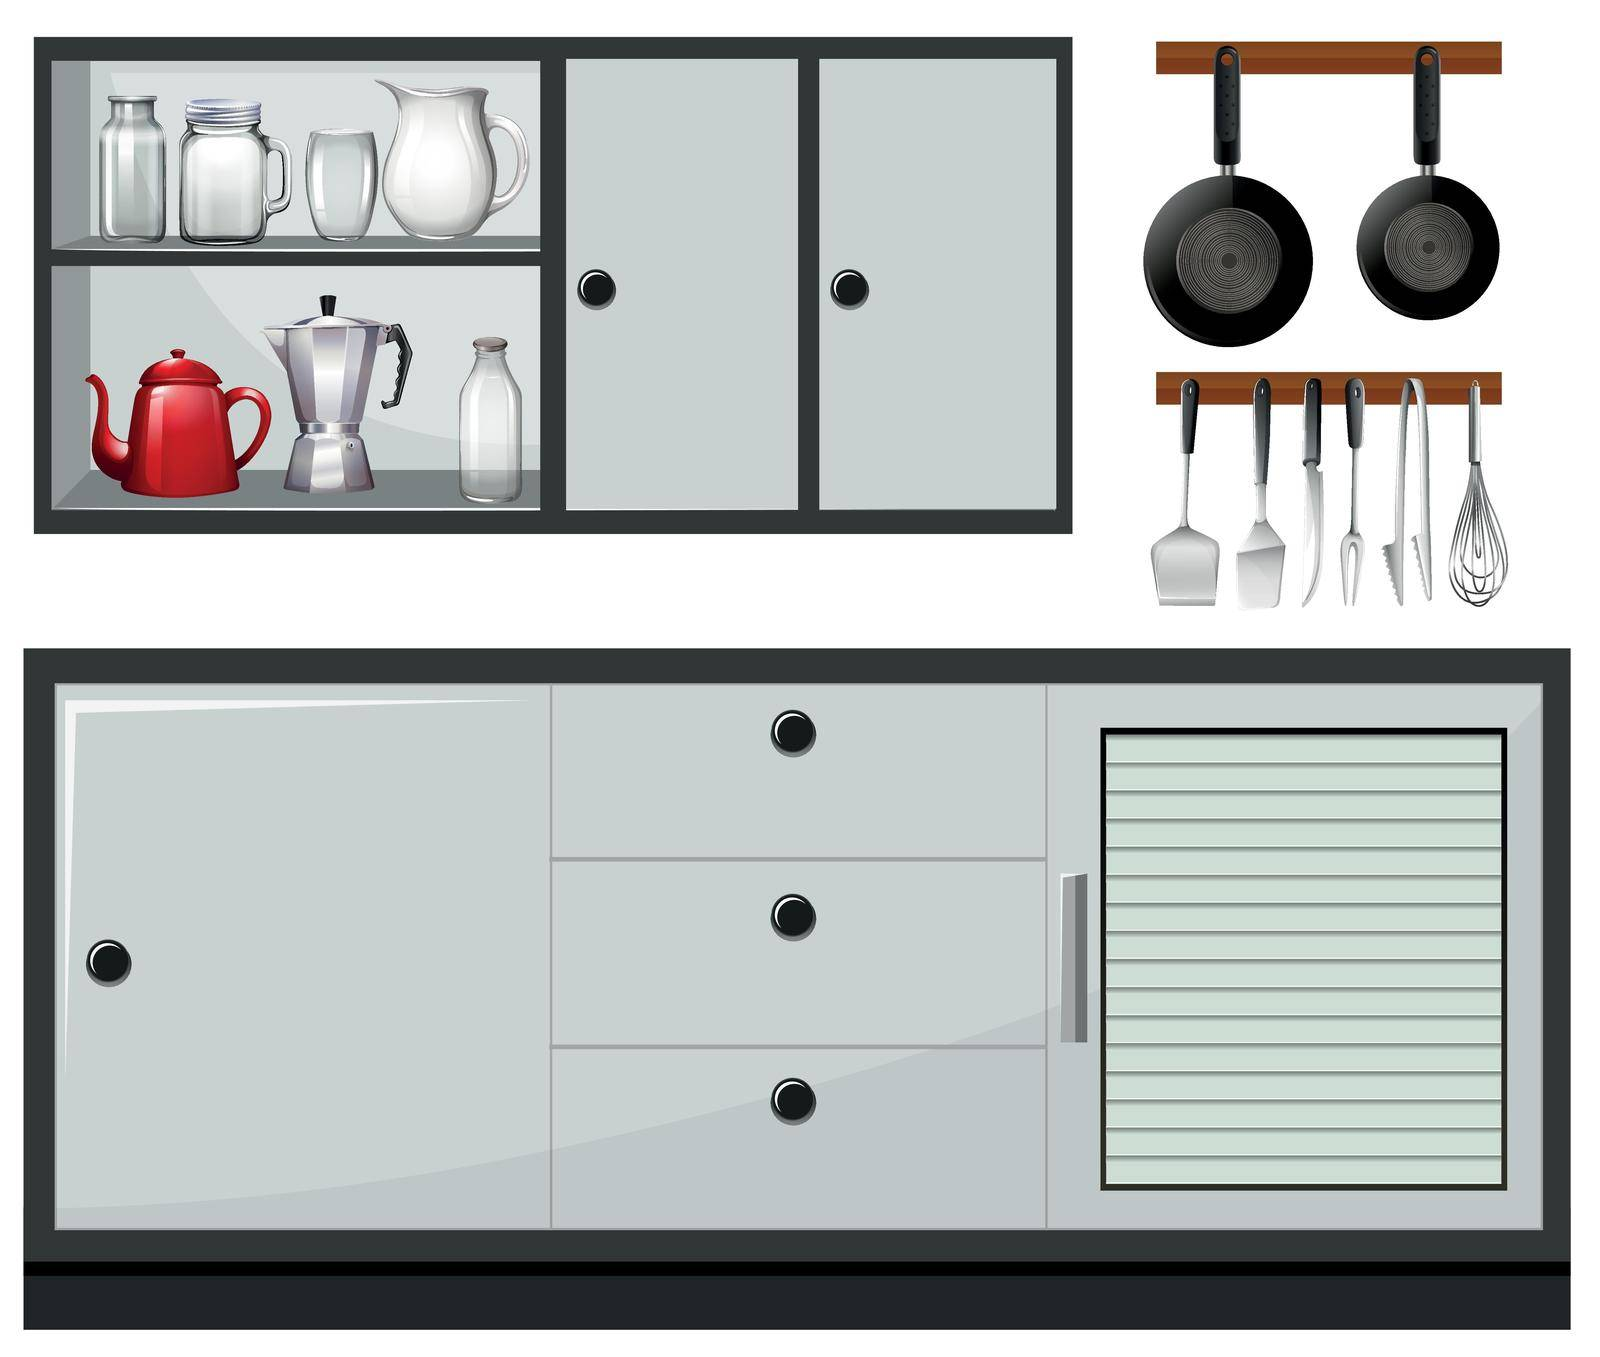 Equipment and furniture in the kitchen illustration